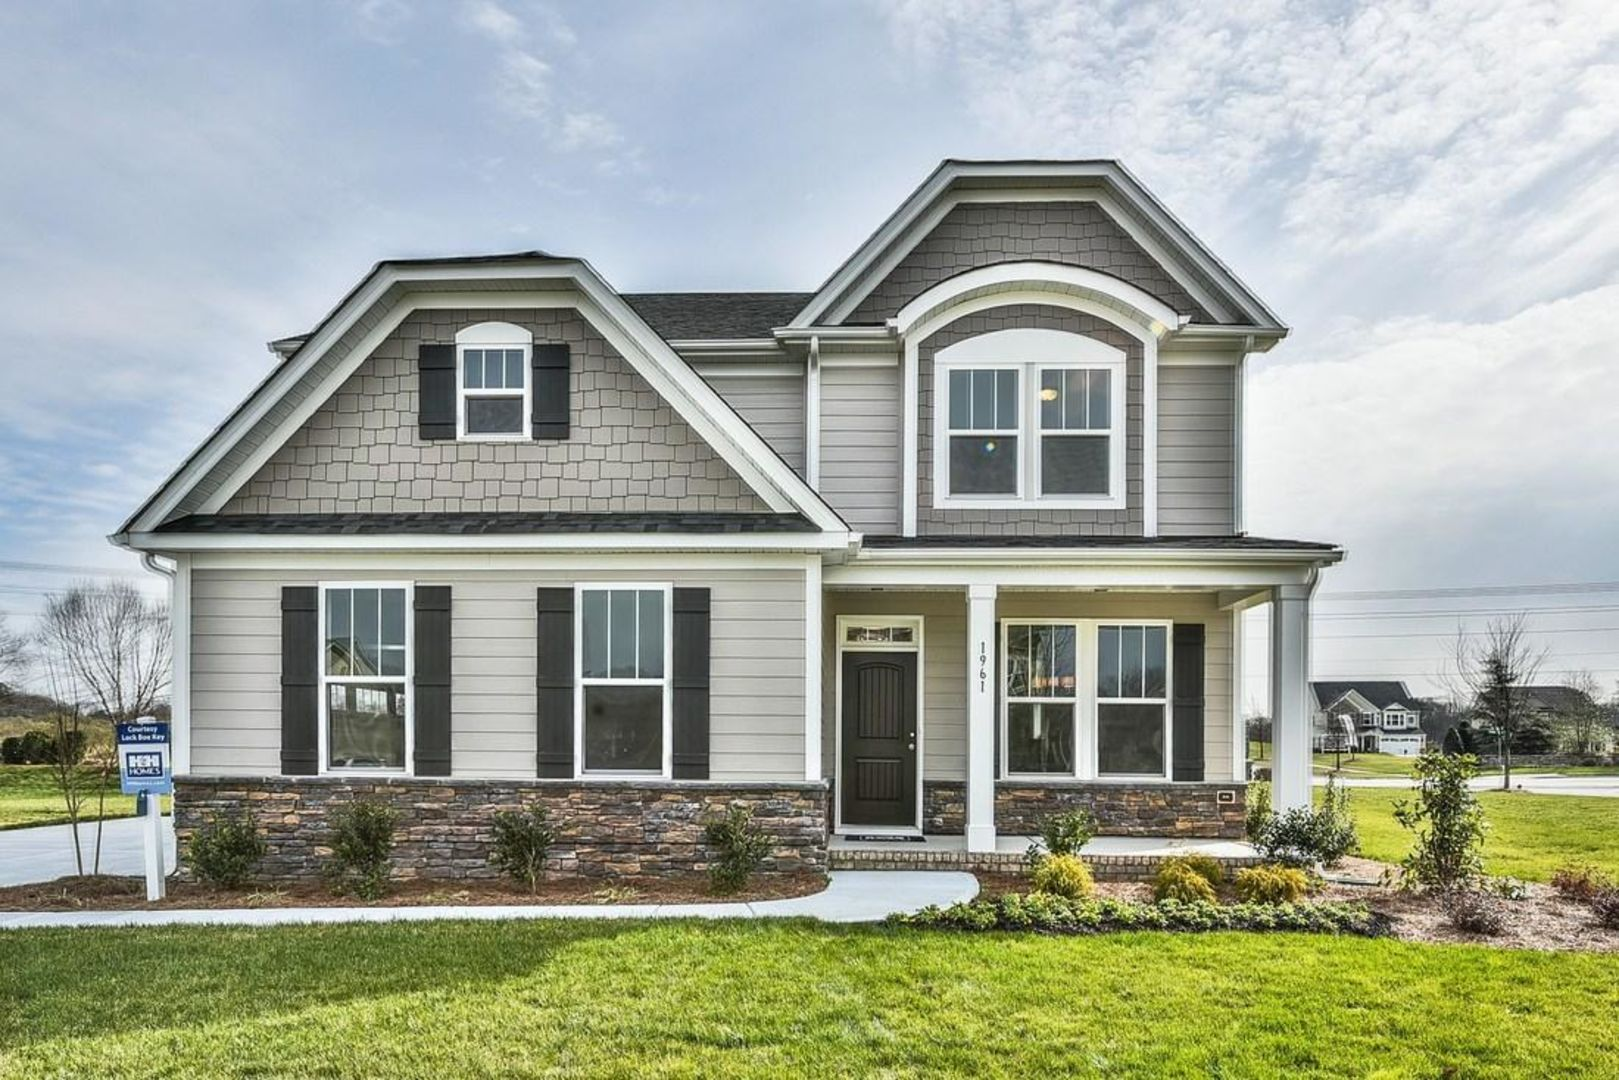 New homes in raeford nc homes for sale new home source for New home source